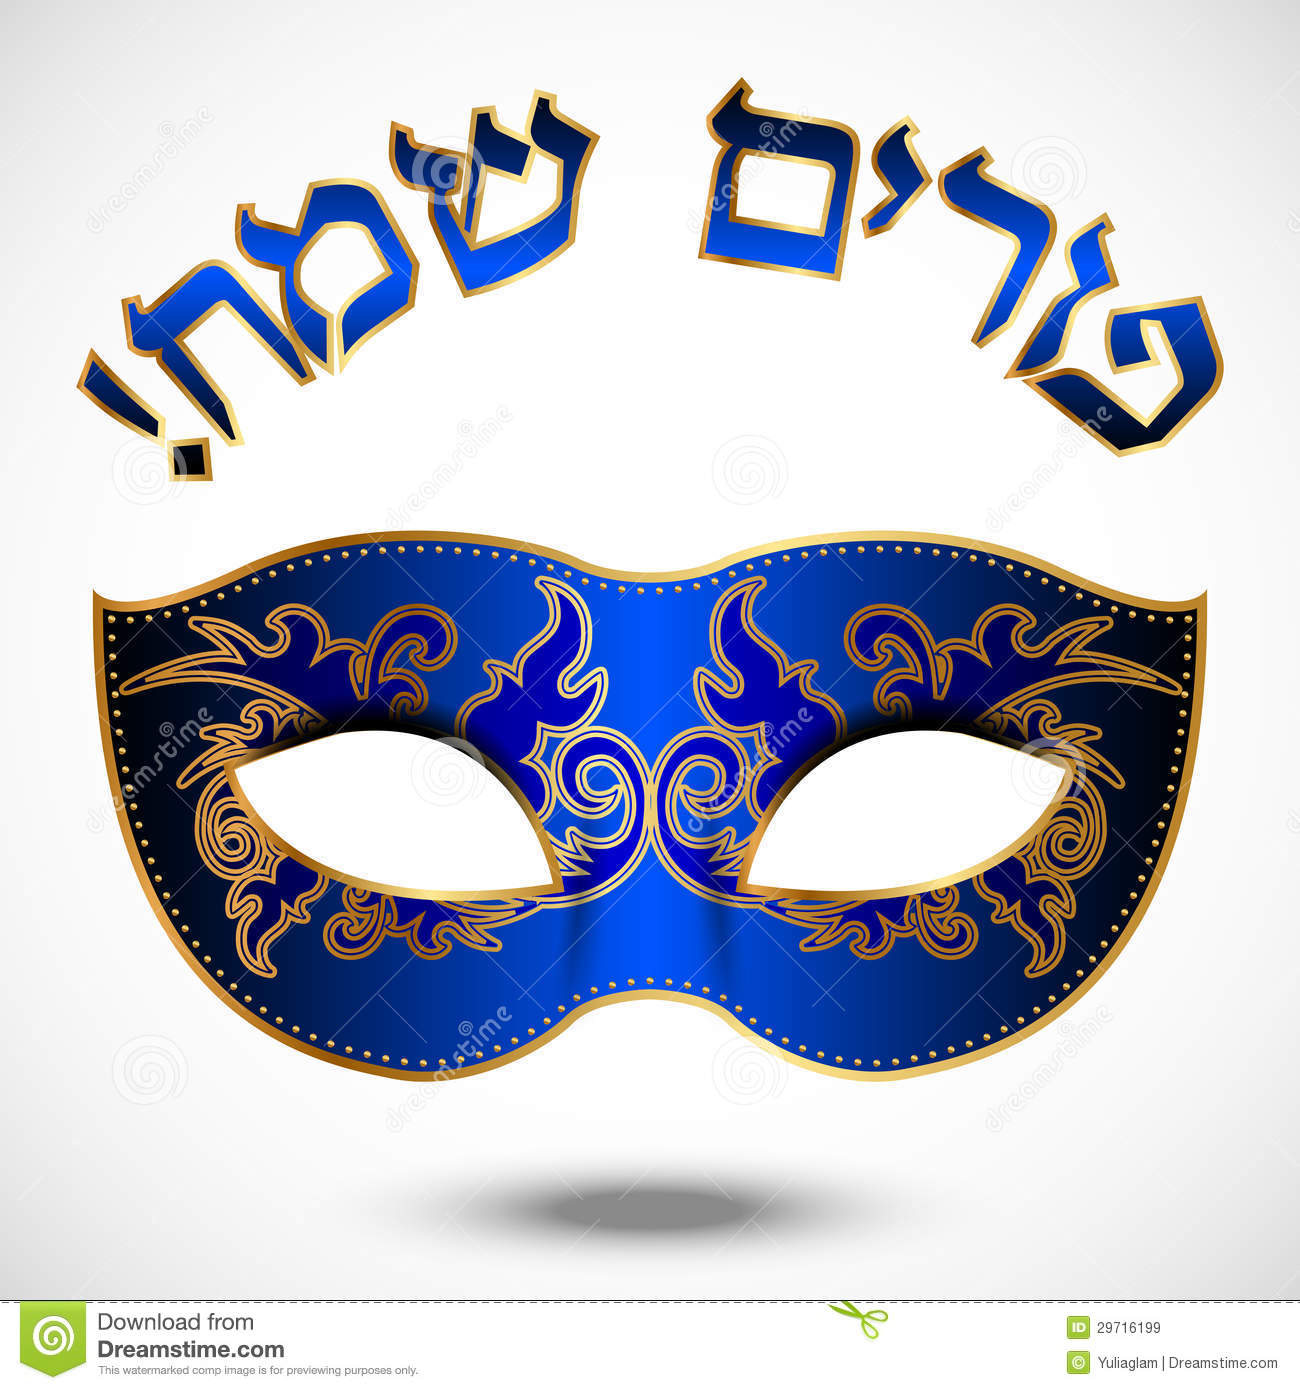 Happy Purim Royalty Free Stock Images - Image: 29716199